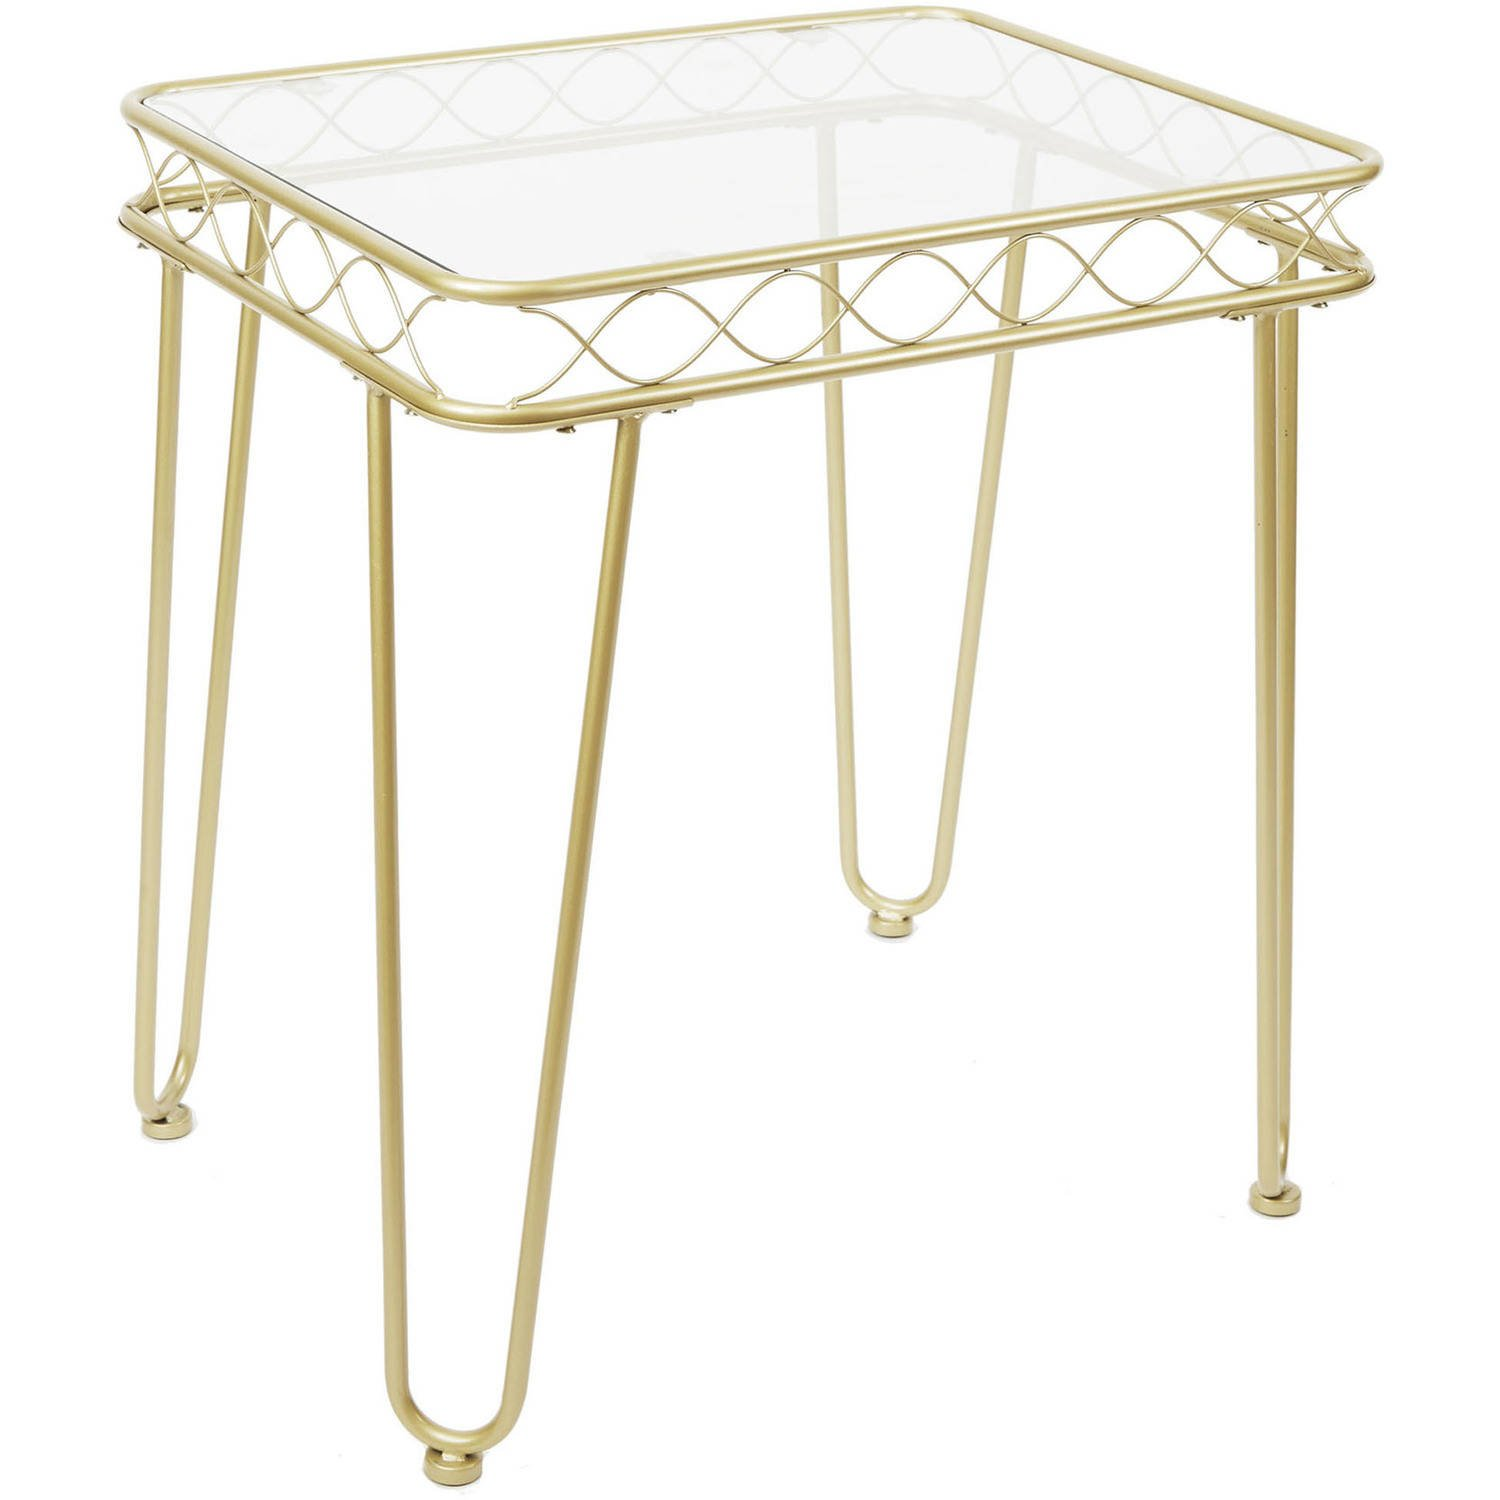 modern glam metallic gold metal glass end table rectangular accent for living room kitchen dining base coffee best homesense furniture easy nightstand plans wood tables